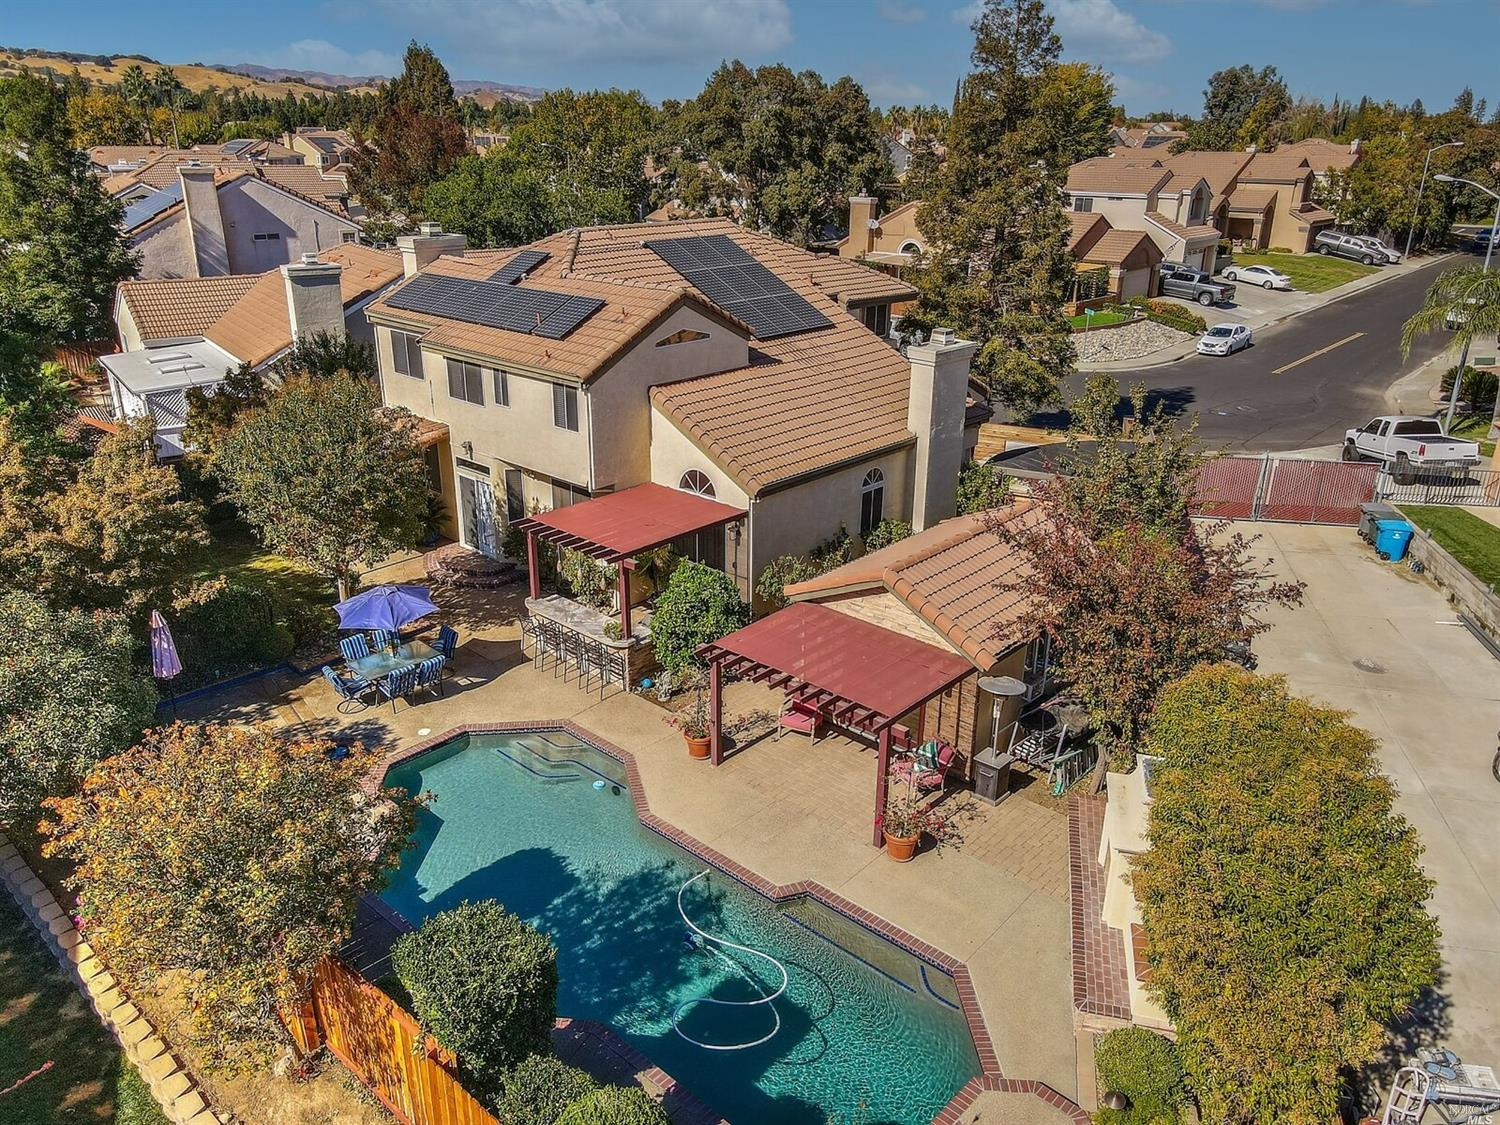 Stunning 5-bedroom, 3 full bath two story SOLAR home located in prestigious Browns Valley. Attention